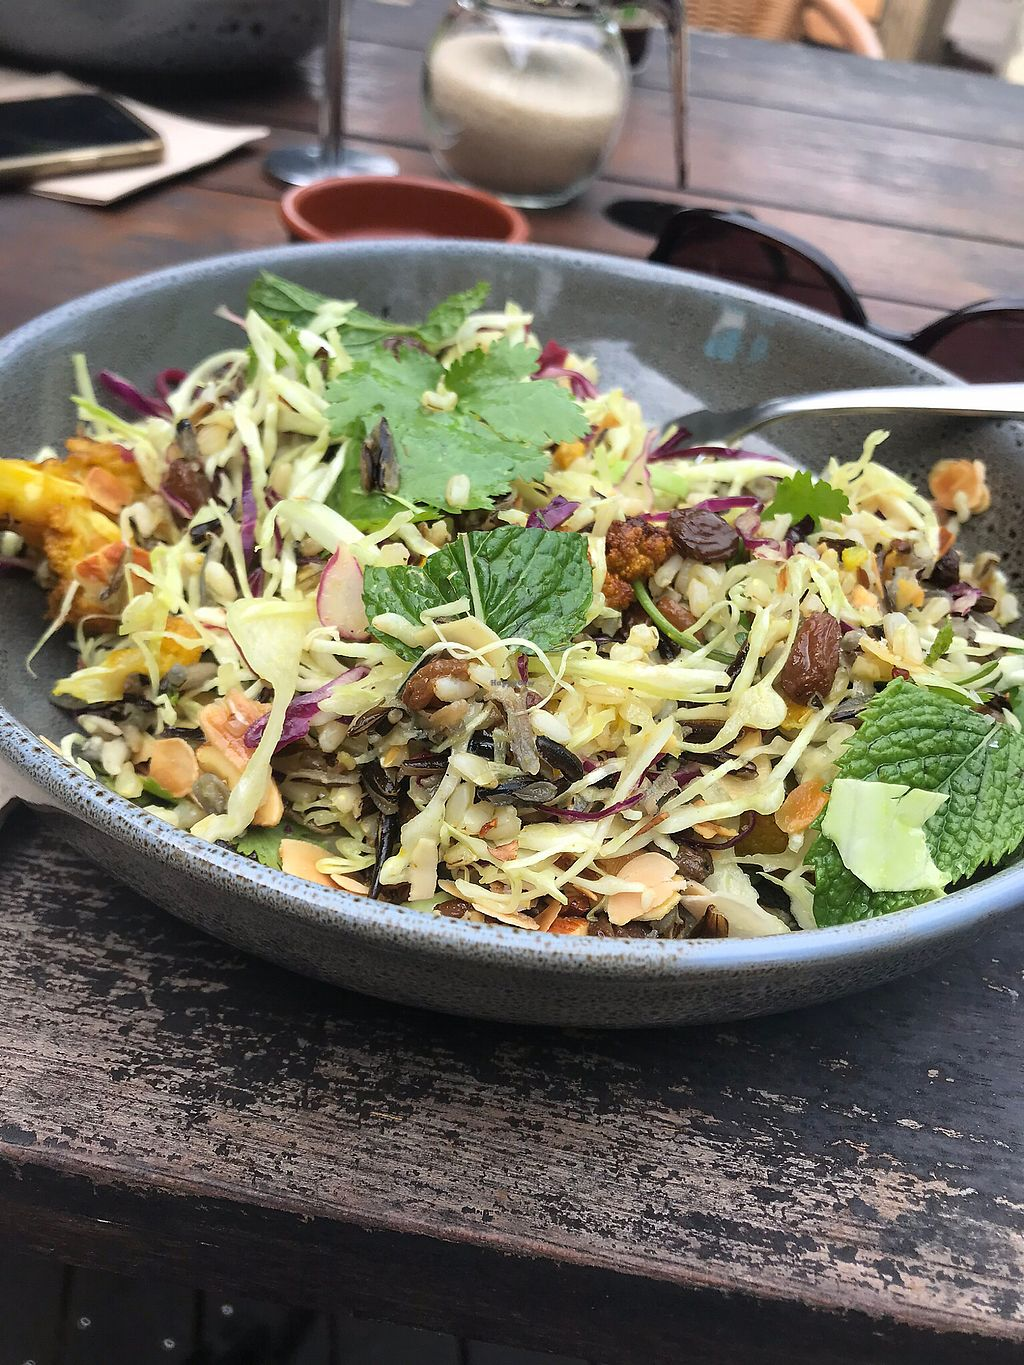 """Photo of Poinciana  by <a href=""""/members/profile/deejay96"""">deejay96</a> <br/>Black wild rice and turmeric cauliflower. Big bowl of nutrition  <br/> January 11, 2018  - <a href='/contact/abuse/image/109230/345387'>Report</a>"""